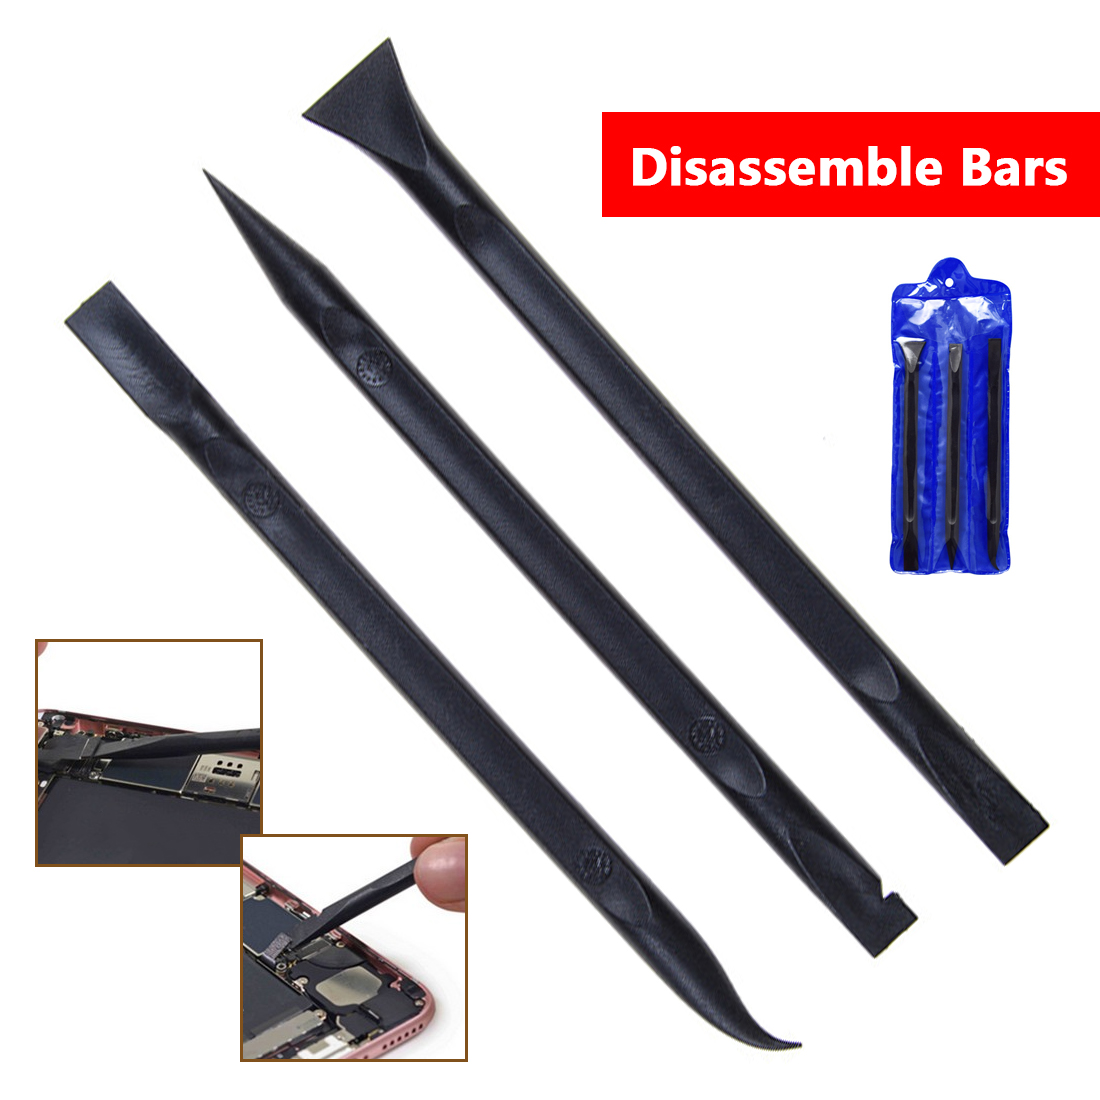 3pcs ESD Safe Heavy Duty Plastic Spudger Set For Mobile Phone Tablet Opening Repair Tool Durable Anti-static Spudger Hand Tools